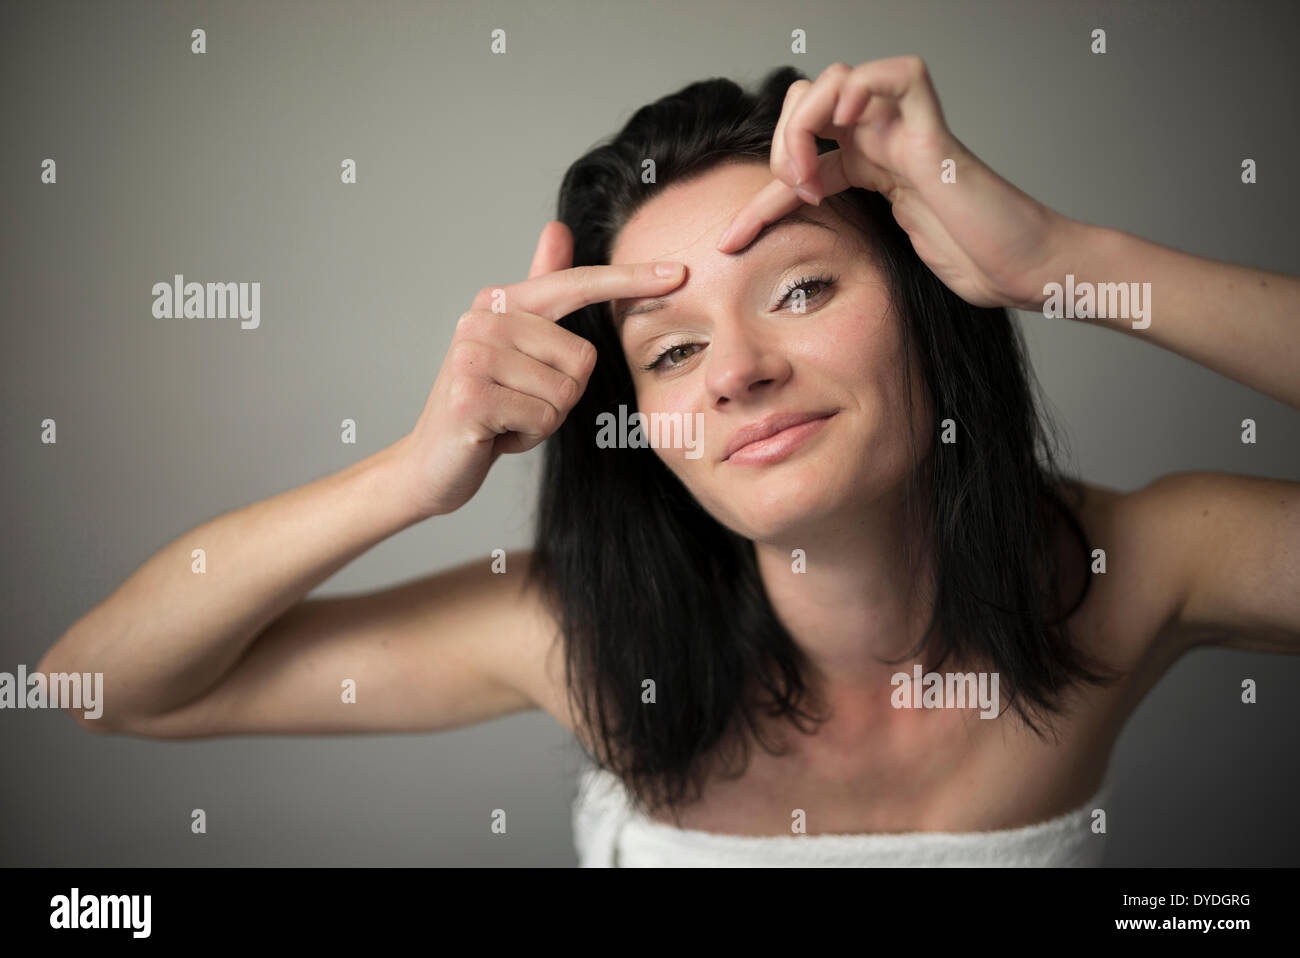 A beautiful cheeky girl squeezing her brow. - Stock Image